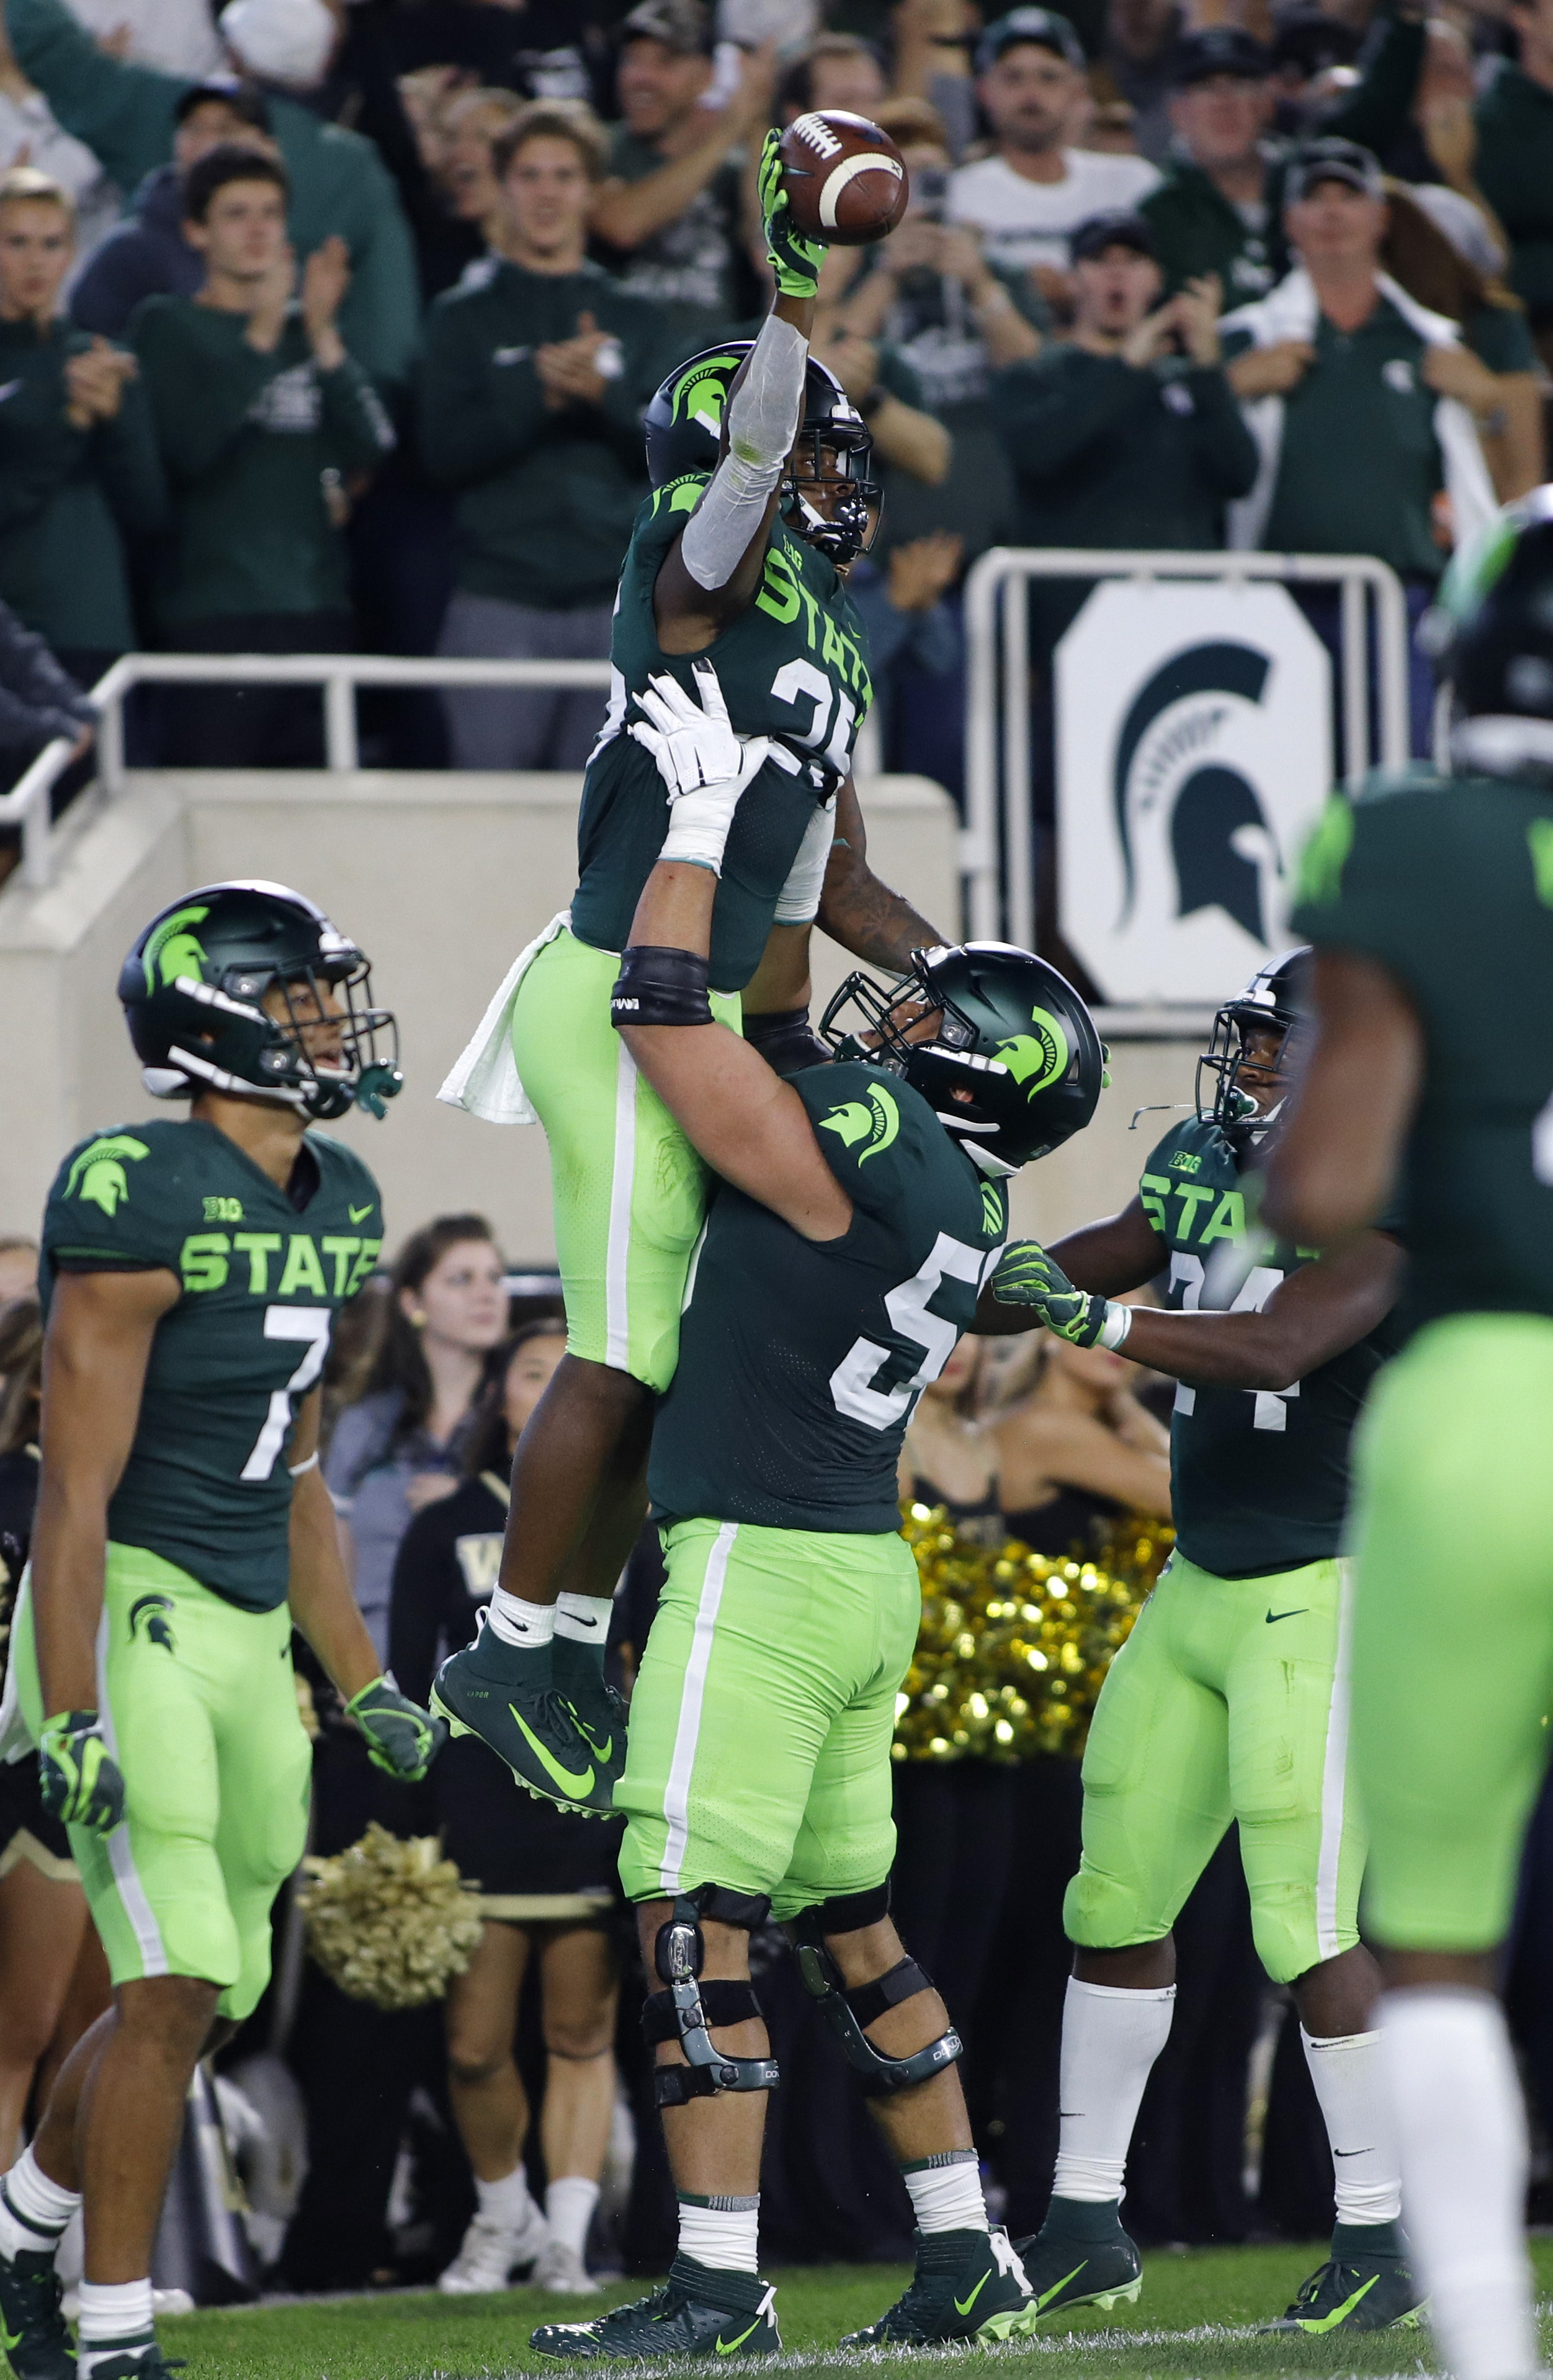 Offense responds for No. 19 Spartans in 51-17 win over WMU